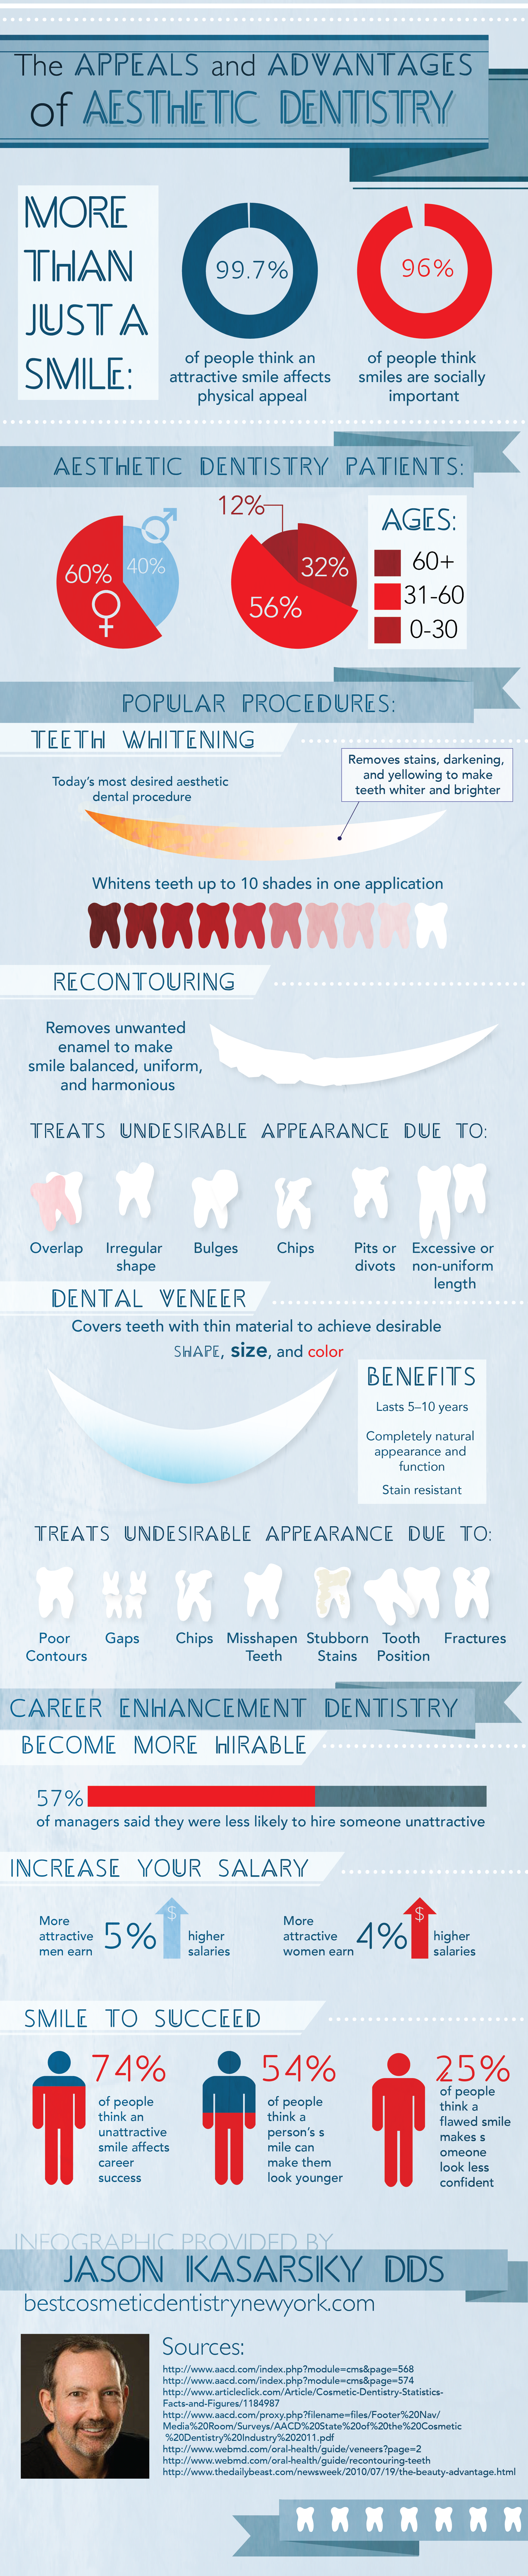 The Appeals and Advantages of Aesthetic Dentistry